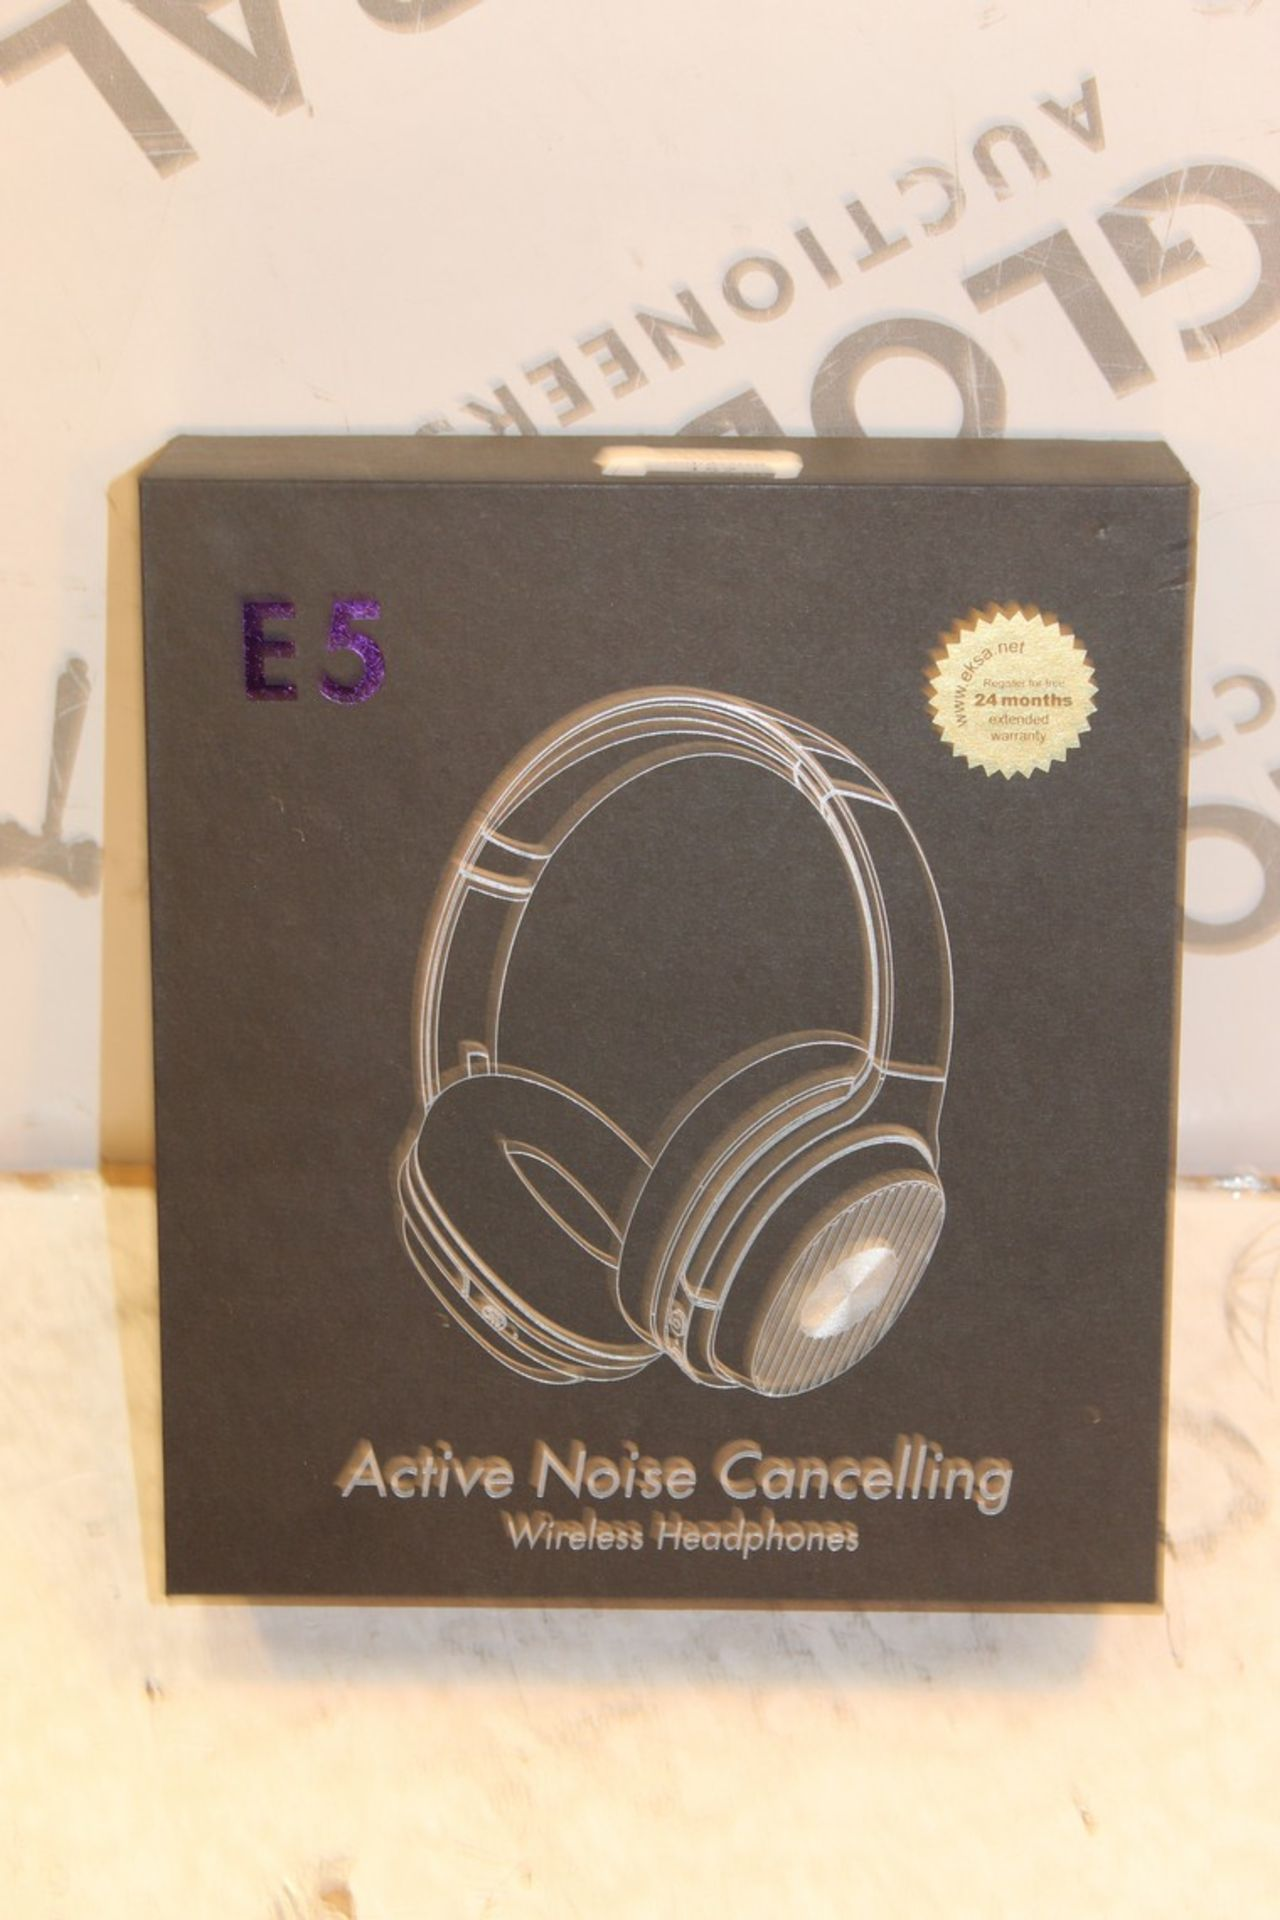 Lot 157 - E5 Headphones RRP £50 (Pictures Are For Illustration Purposes Only)(Appraisals Available Upon